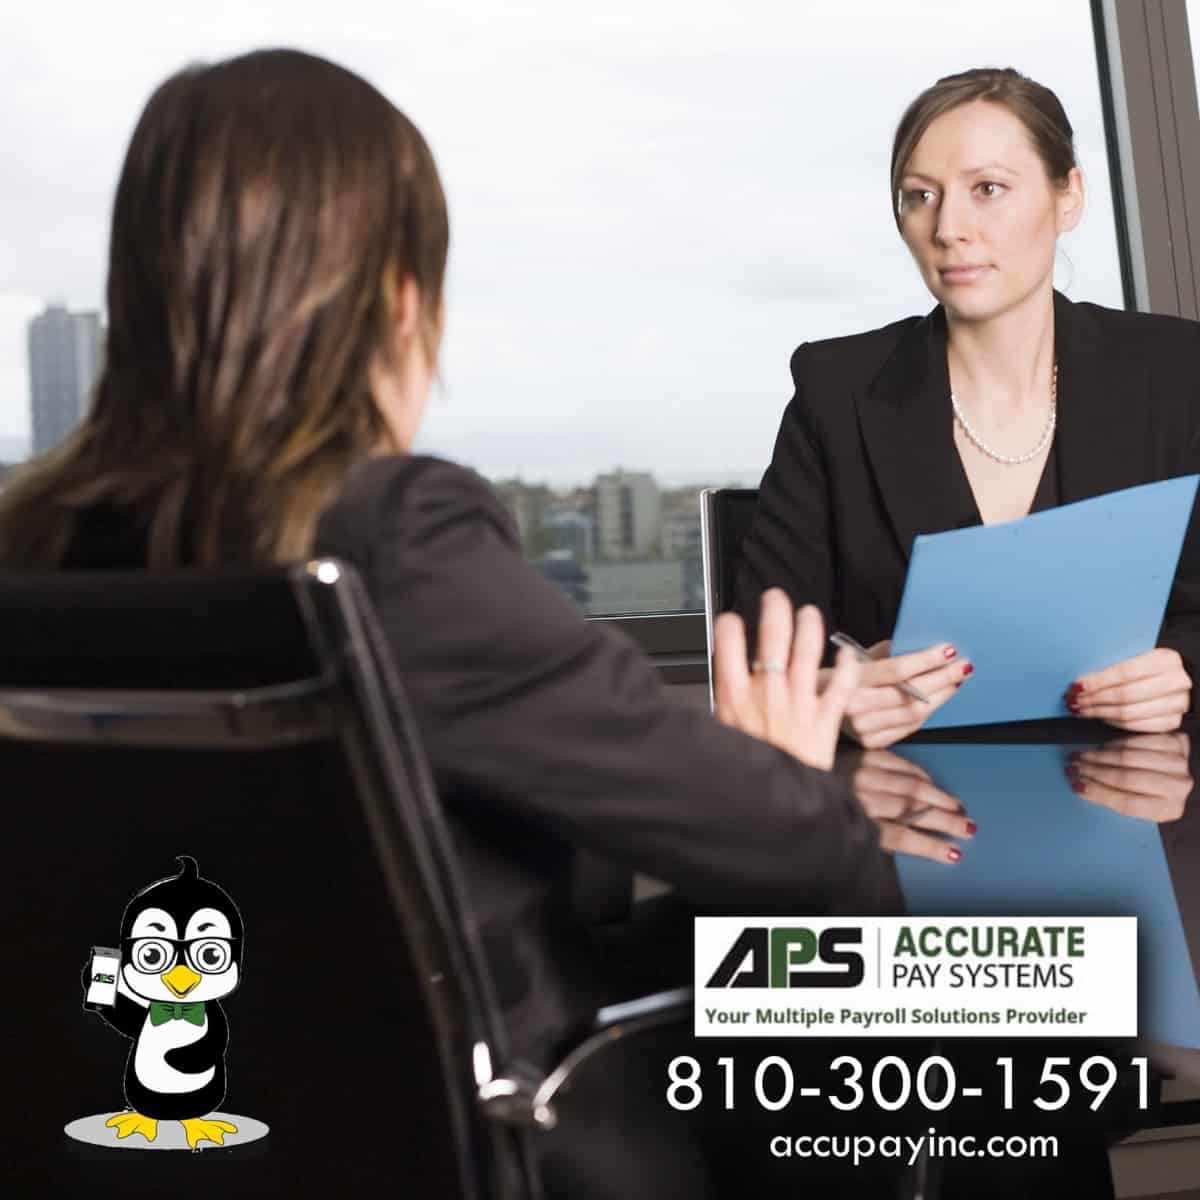 Exit interview performed by Accurate Pay Systems, Inc.